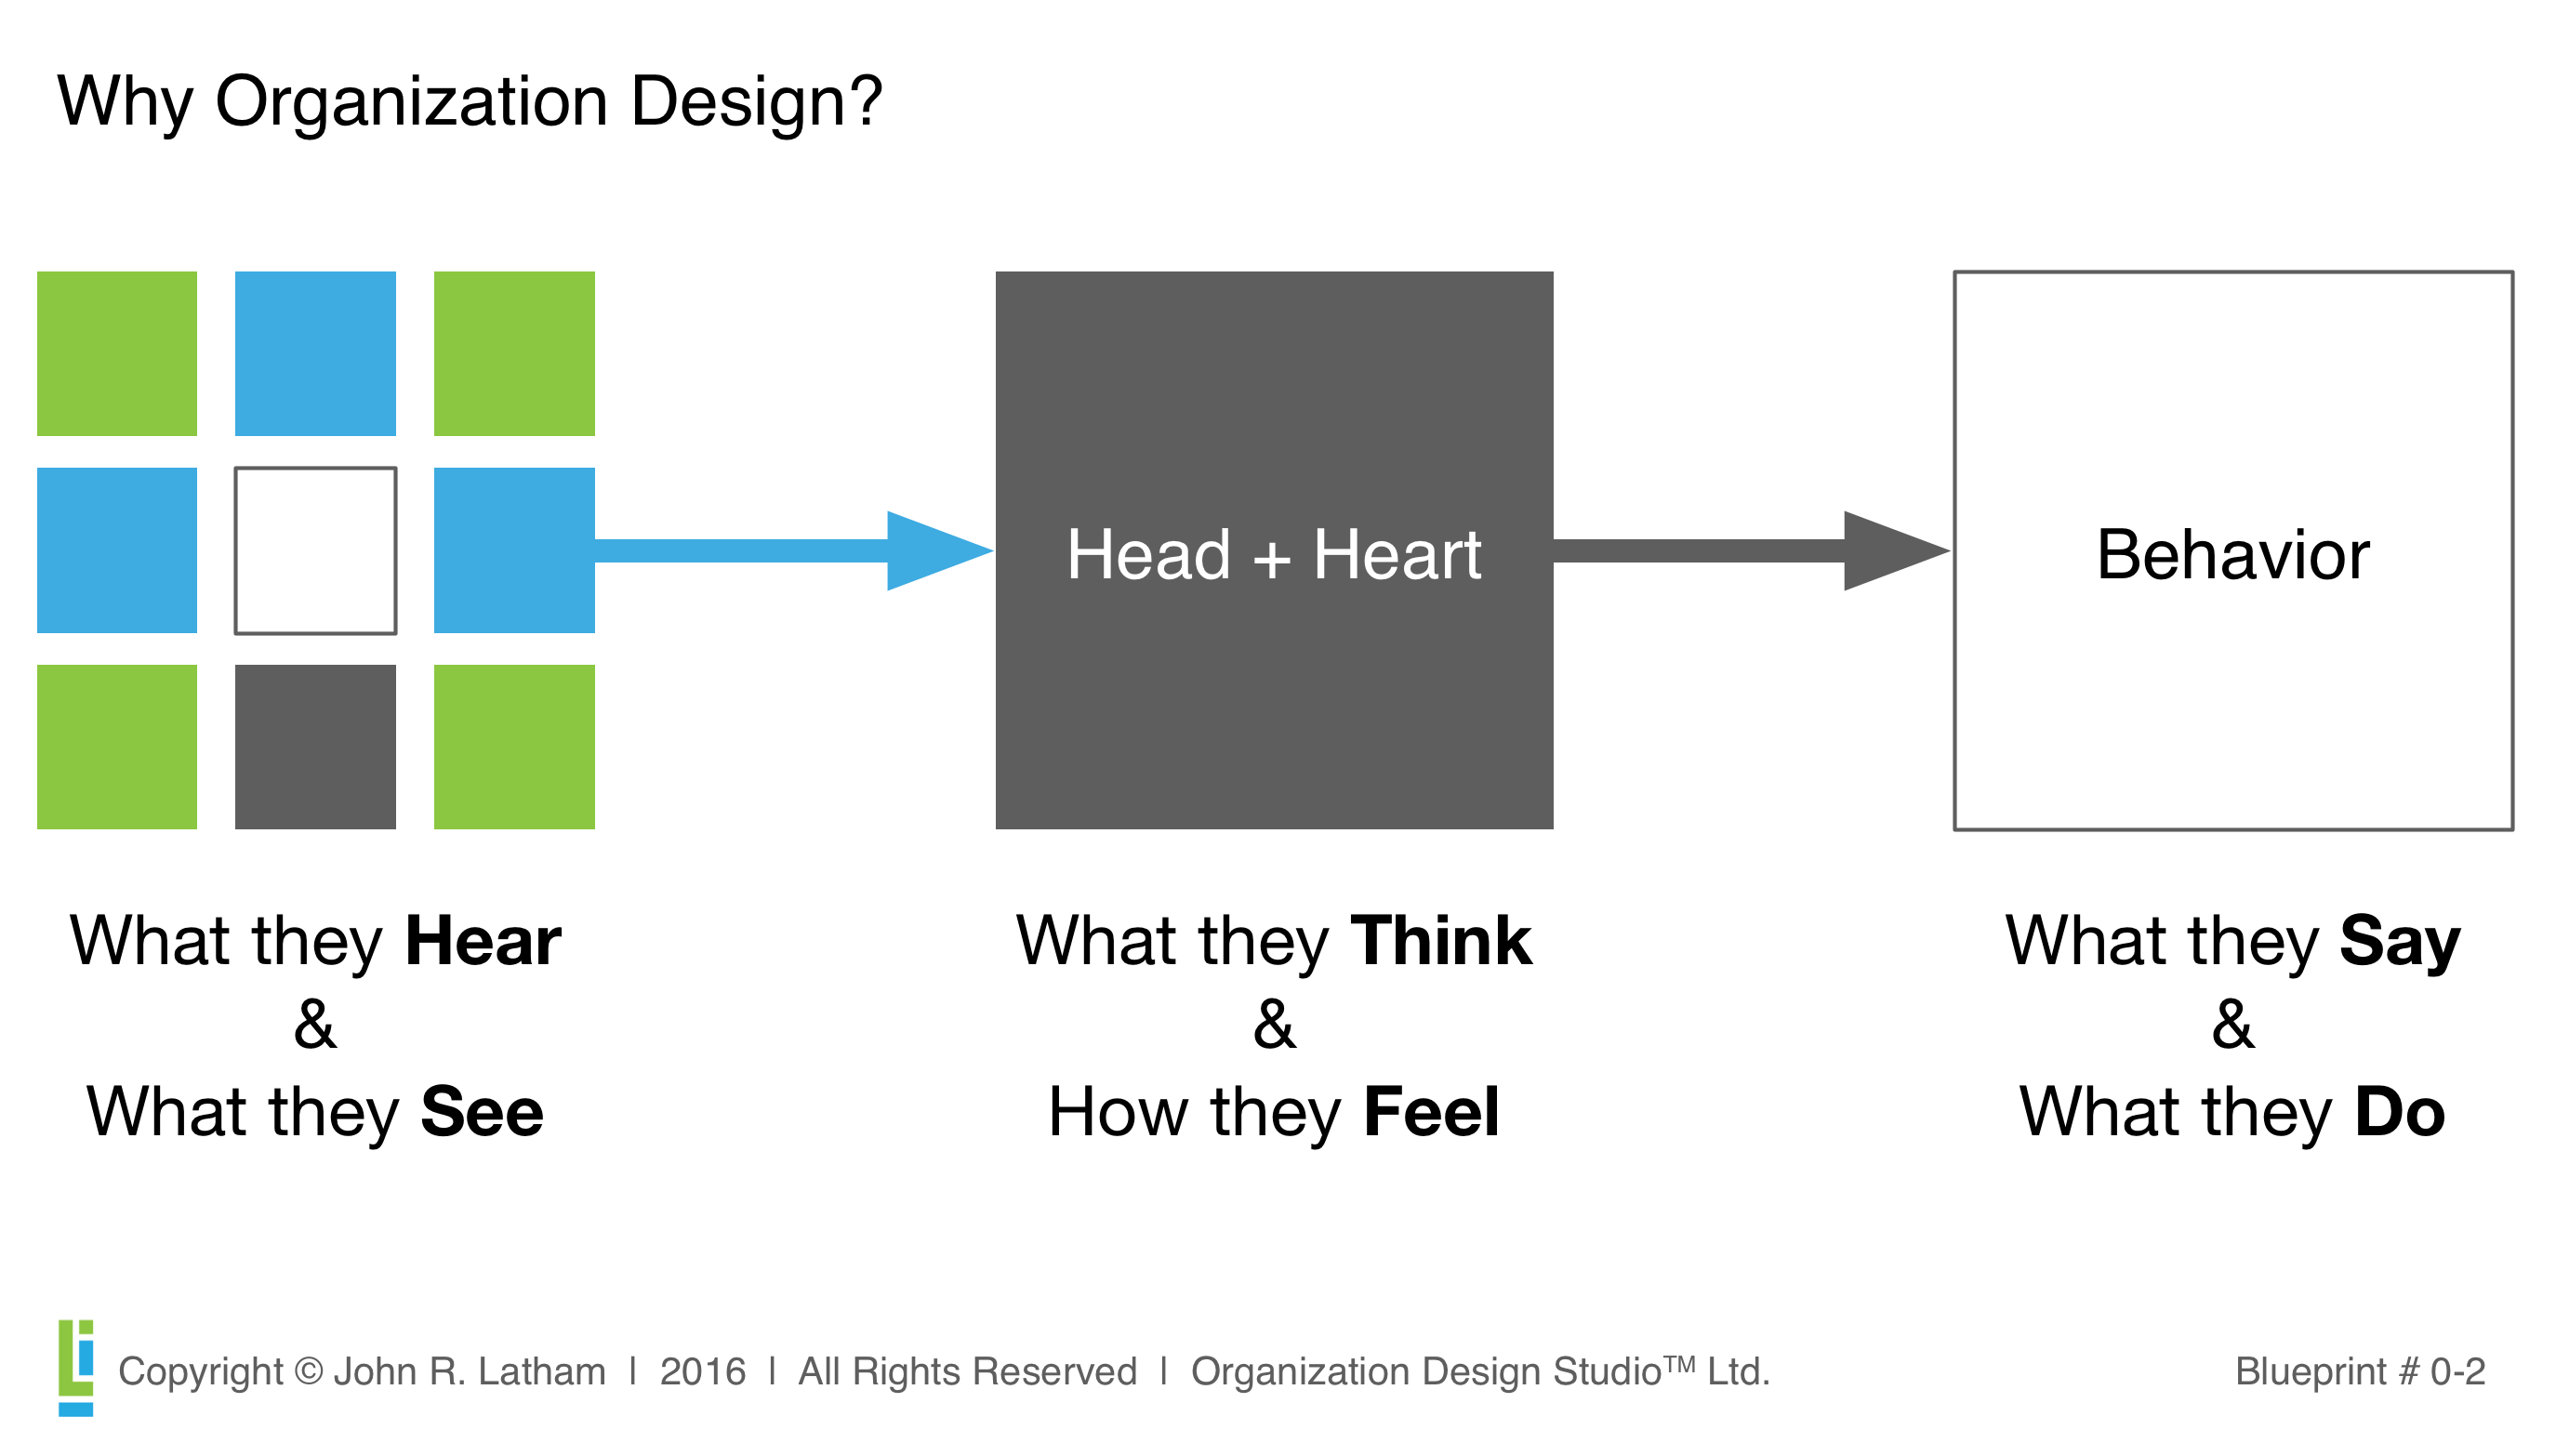 Three cs of organization design john latham while interacting with the organization stakeholders hear and see many manifestations of the organization design what they hear and see influences what malvernweather Choice Image